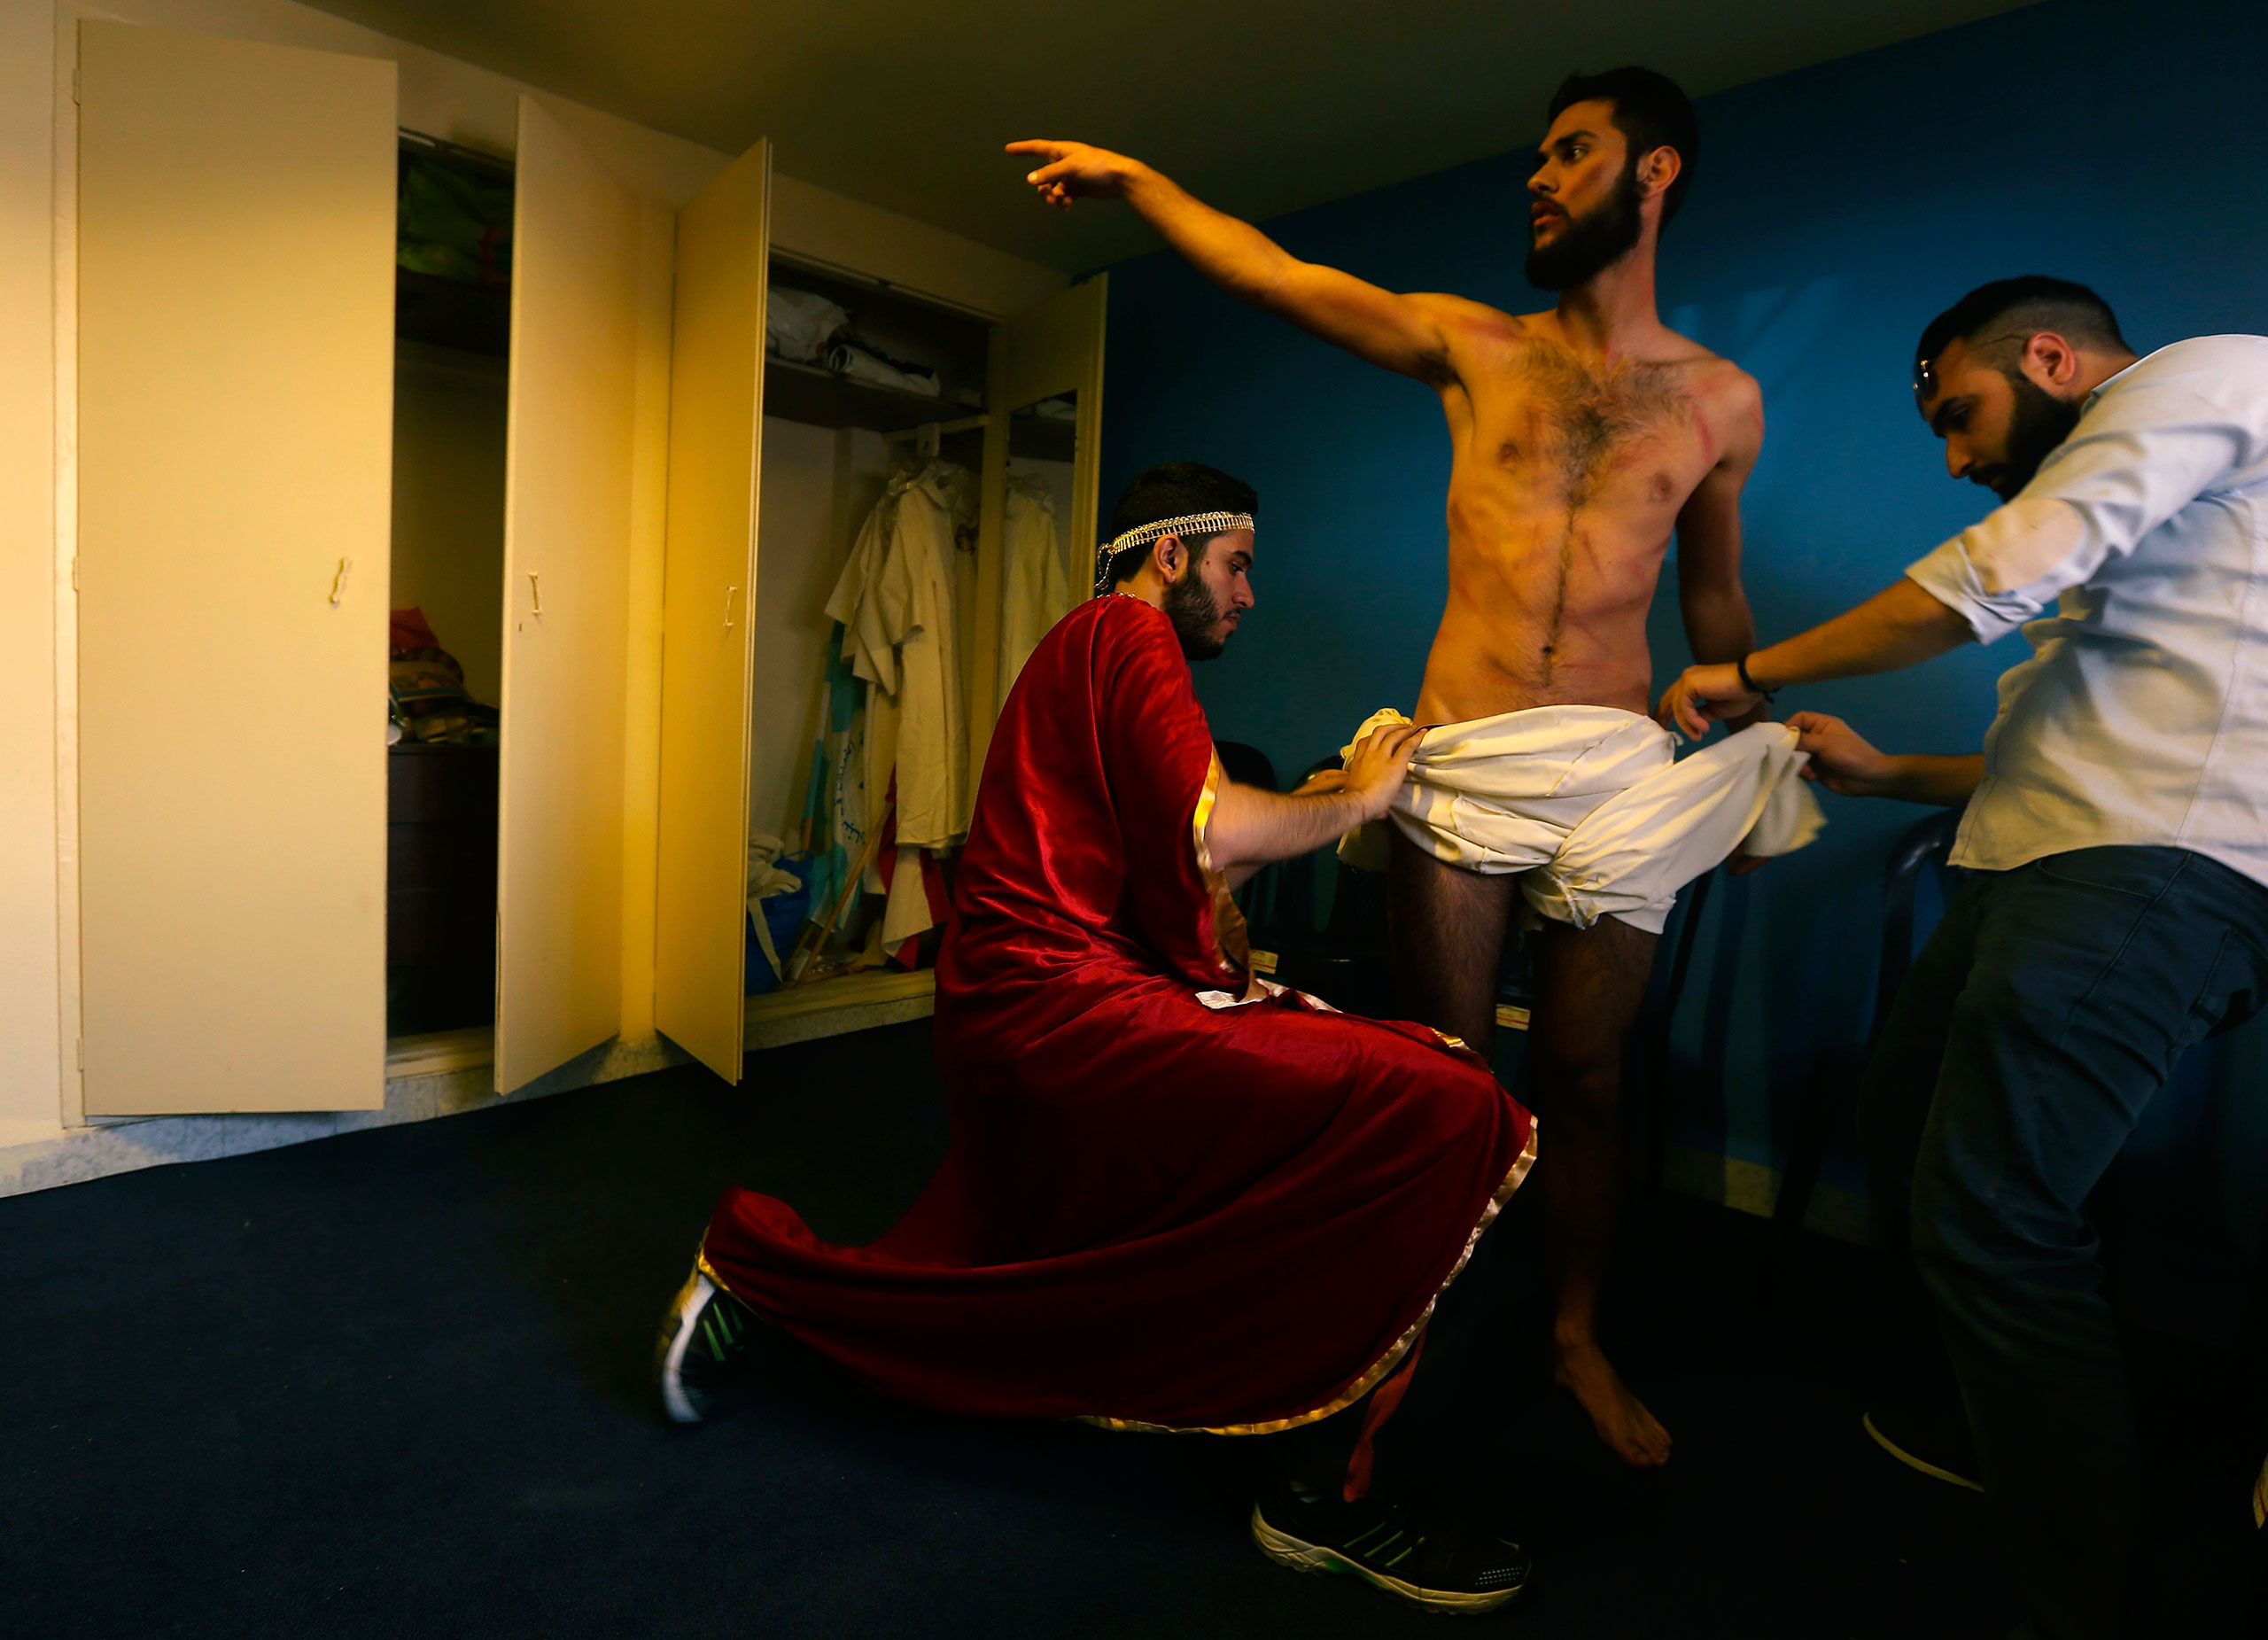 Lebanese Christians prepare the character playing Jesus as they reenact the crucifixion of Christ during Holy Friday in the Christian village of Qraiye, east of Sidon, Lebanon, March 25, 2016.